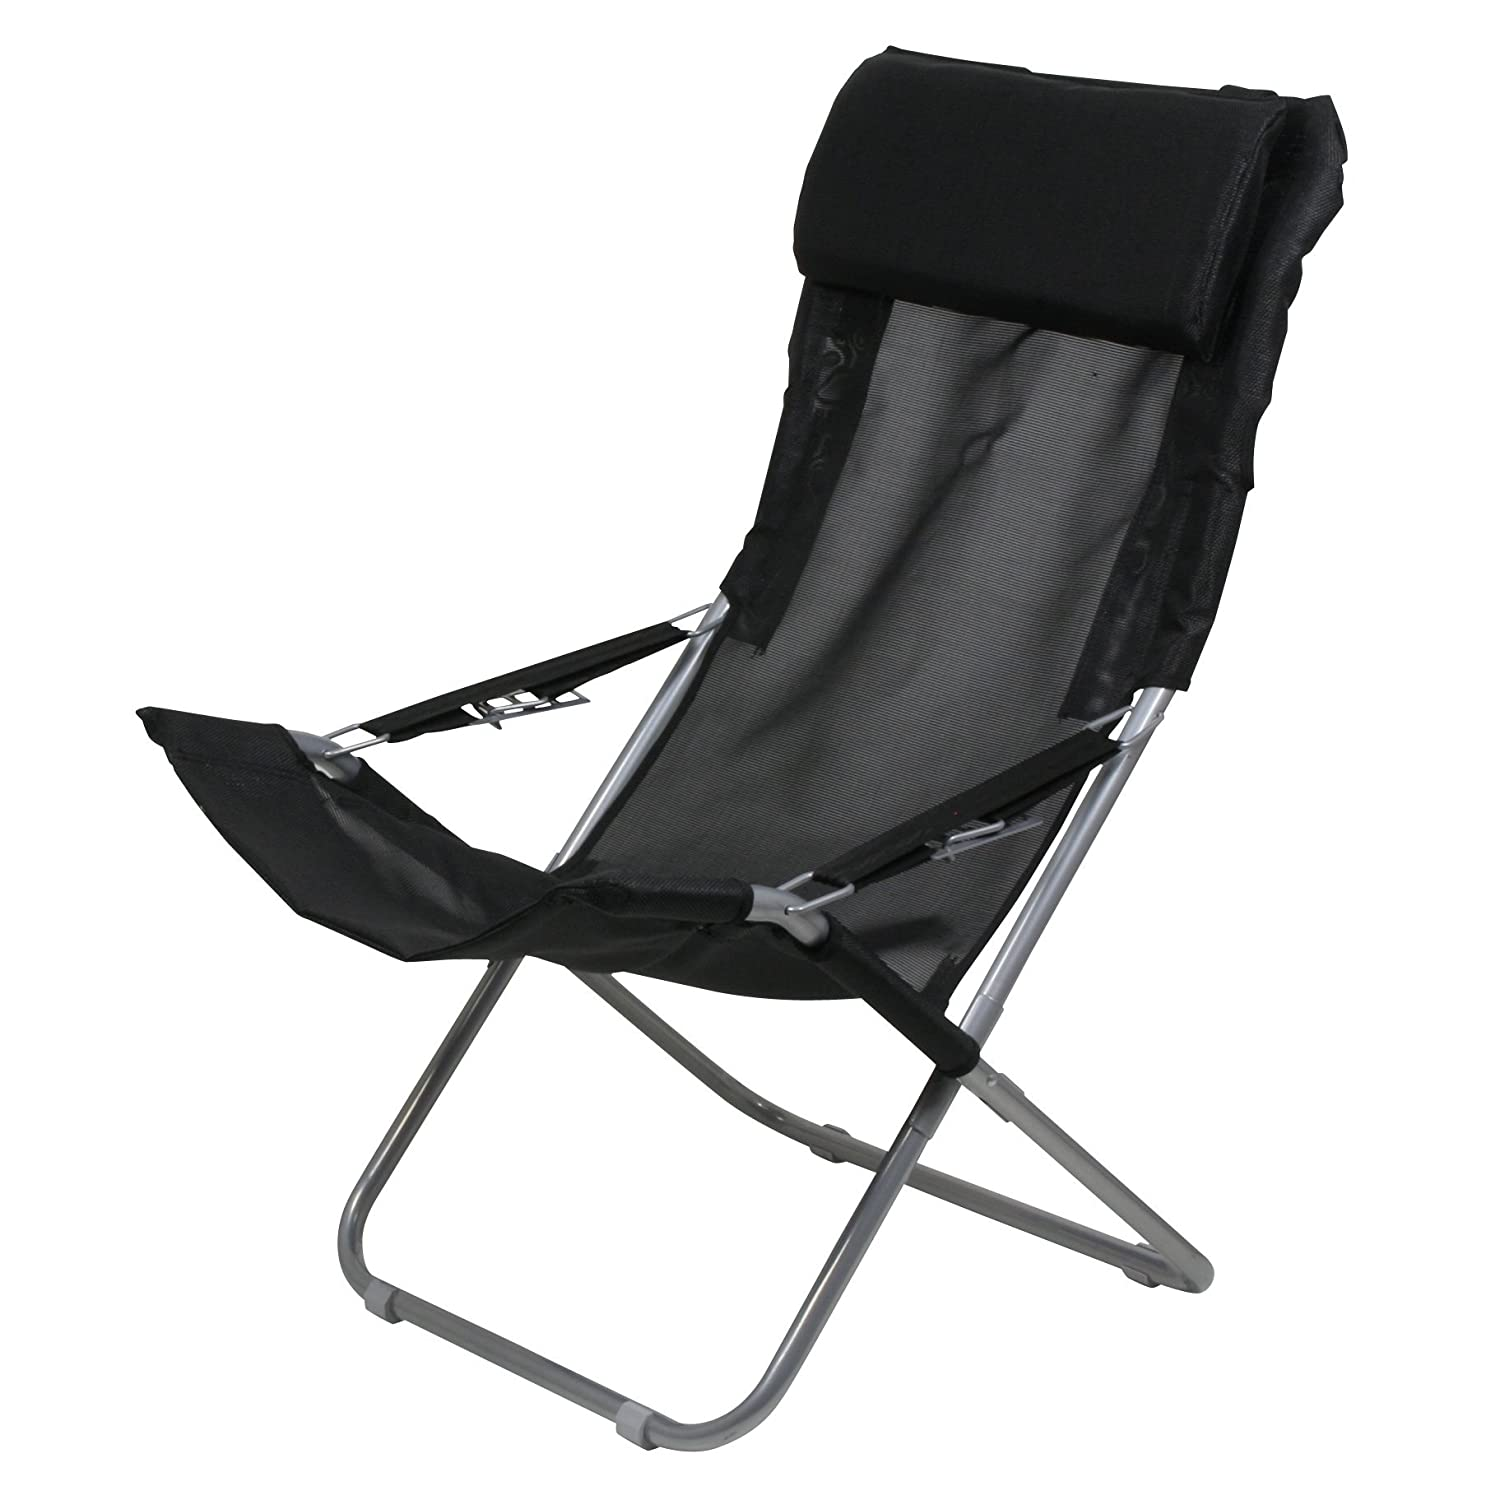 10T Maxi Chair Camping chair relax high back with head cushion